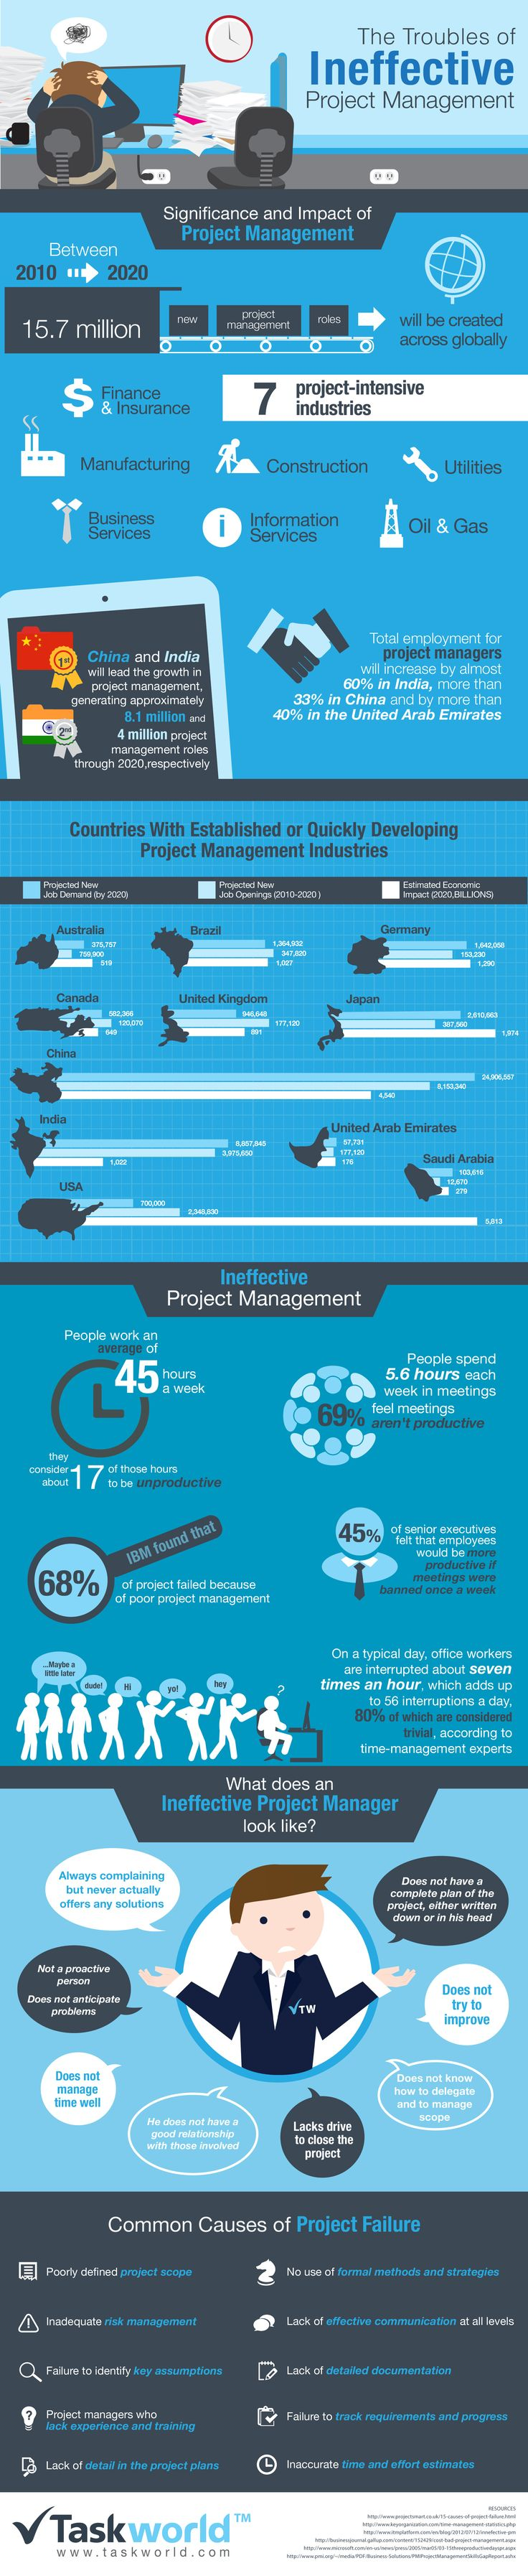 The Troubles of Ineffective Project Management  #Infographic #ProjectManagement